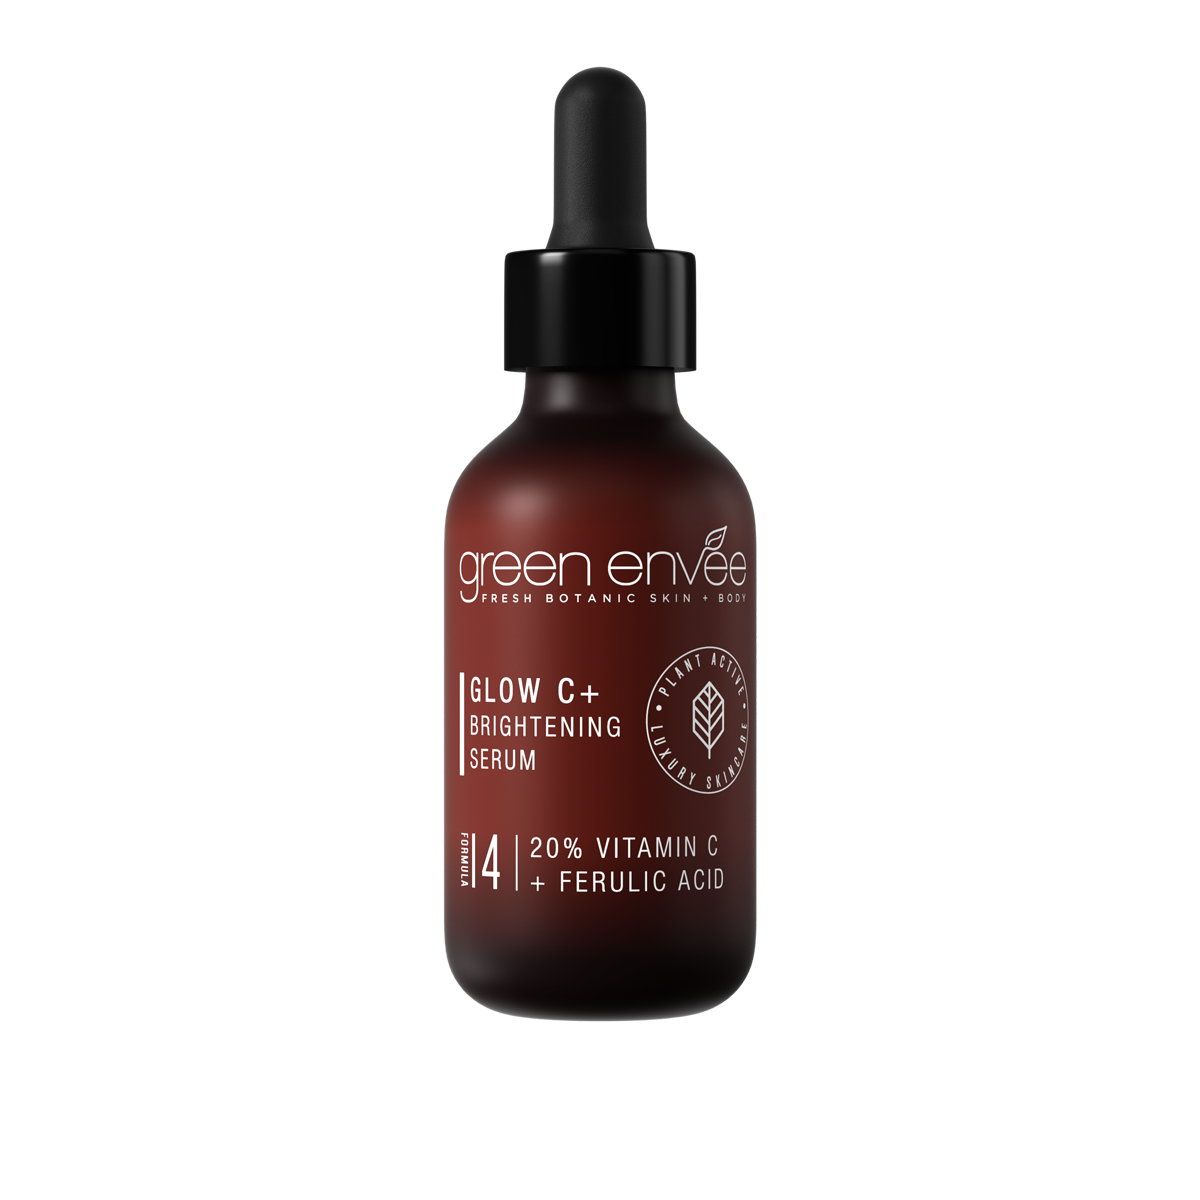 Green Envee 14 GLOW C+ BRIGHTENING SERUM 晚間C+去斑精華 (30ML)